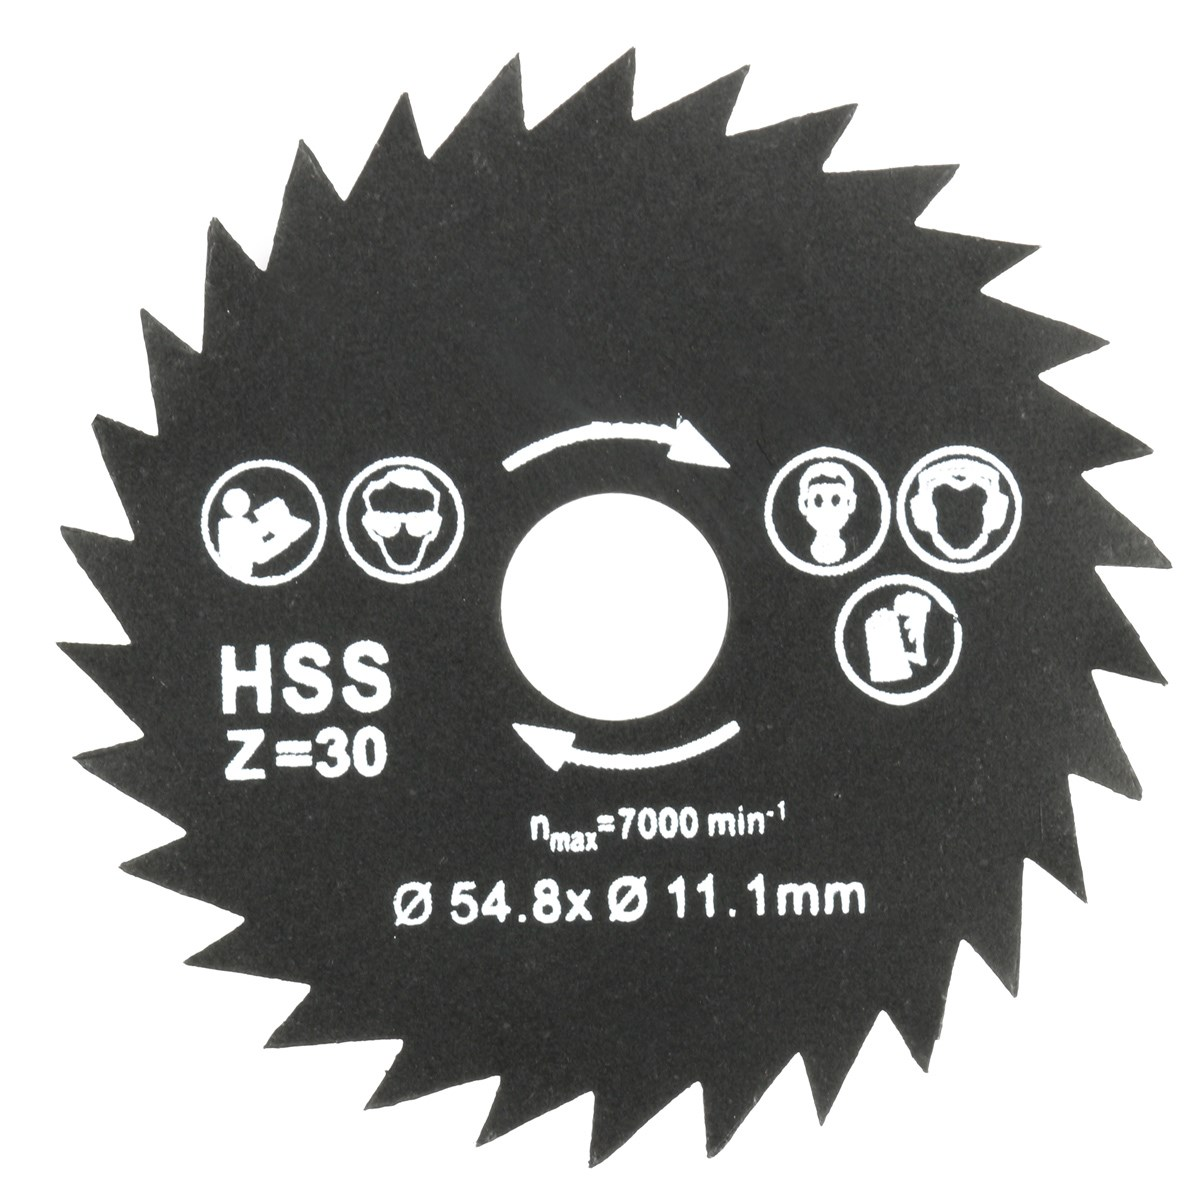 Hot Sale 1PC TCT Circular Saw Blade 30 Teeth 54.8mm Dia Fits Concrete Cement Wood Cutting Tools High Quality